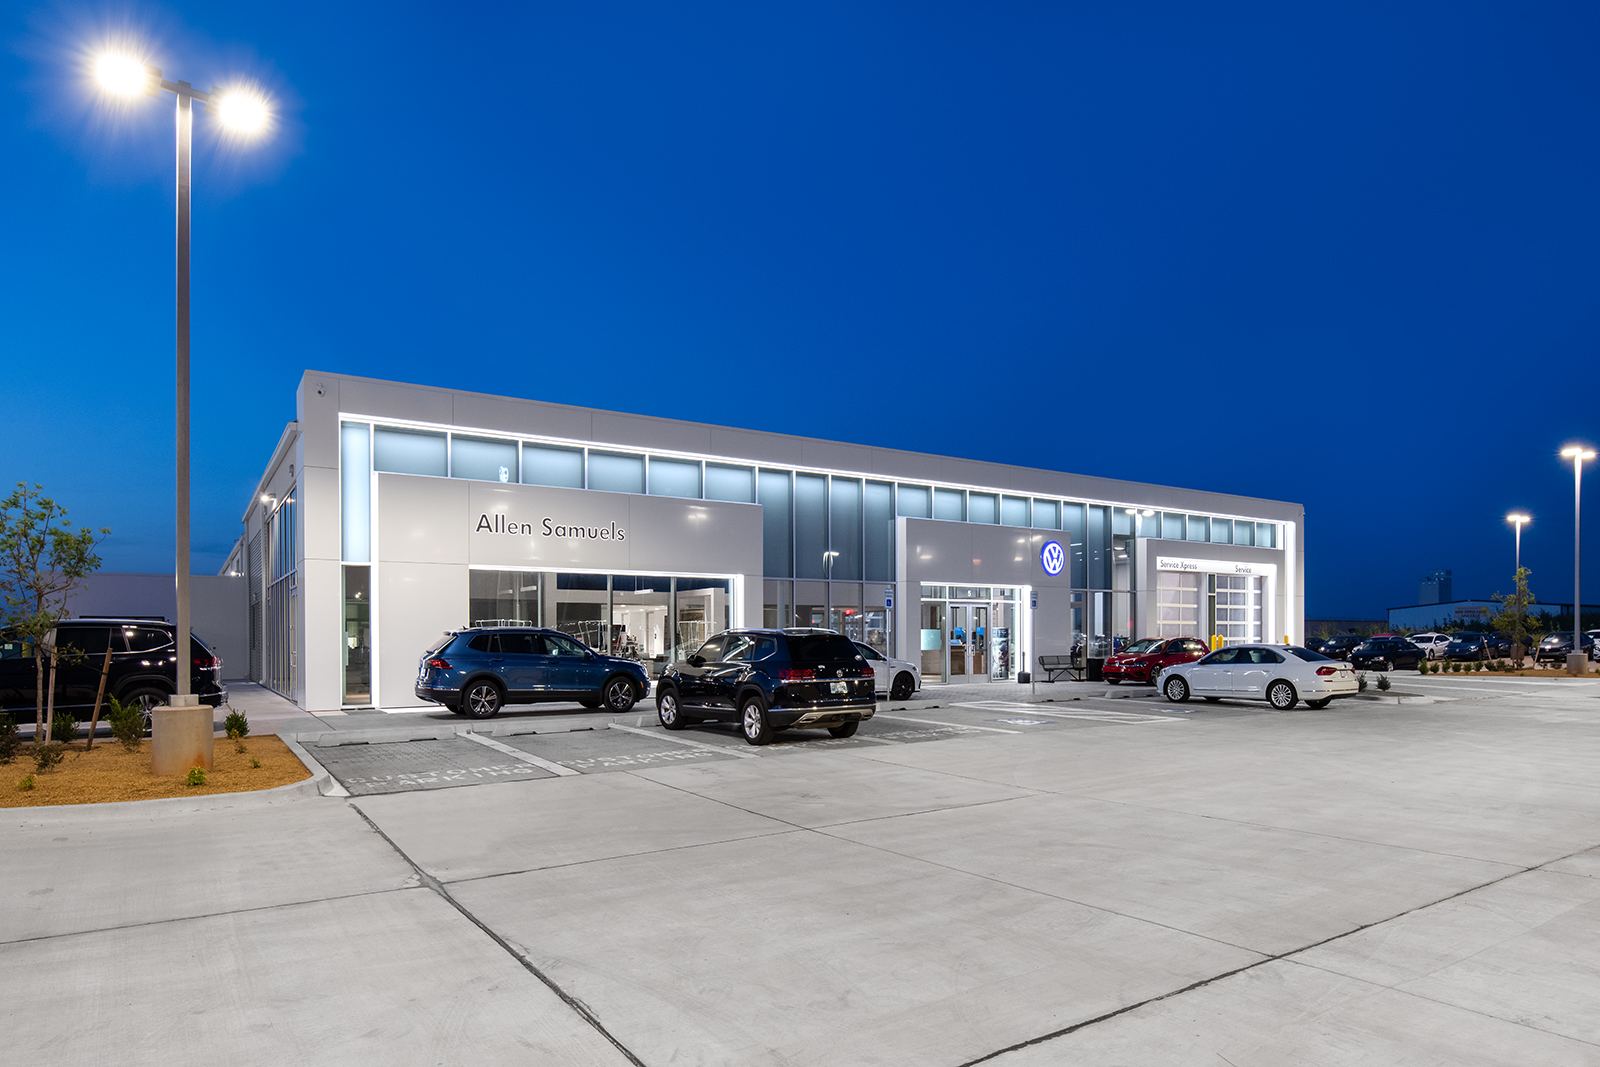 ALLEN SAMUELS VOLKSWAGEN - This is the second ground-up, current Volkswagen image facility completed by Goree Architects. We worked closely with the Dealer, Volkswagen, CBRE, the General Contractor, and the Dealer's vendors to provide an image compliant facility.